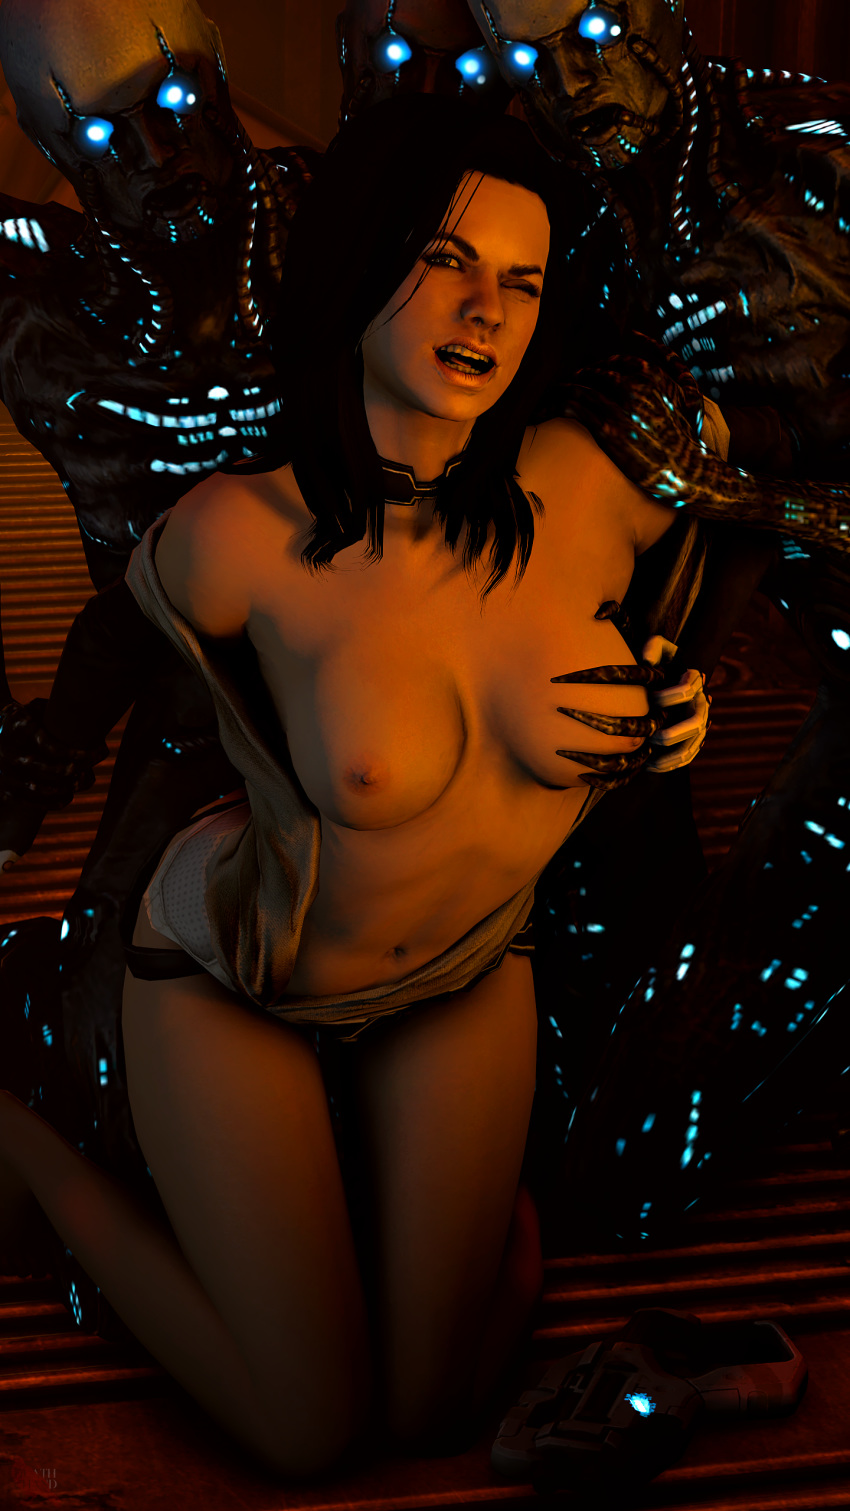 michel dr mass effect 3 Rave in the grave comic